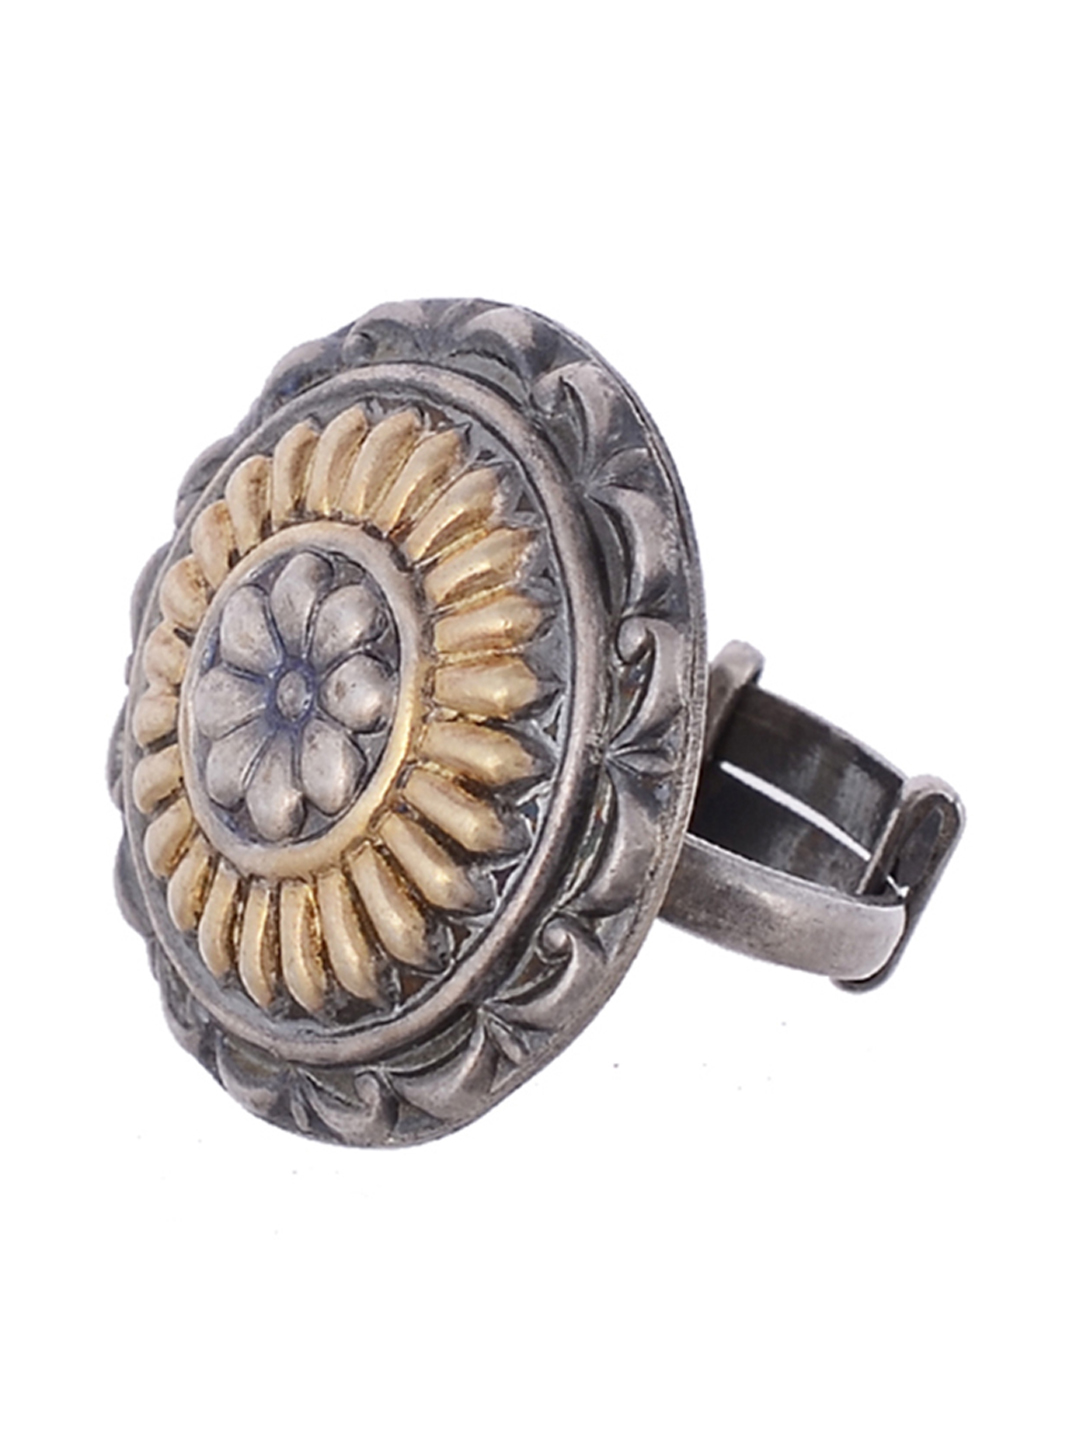 Silvermerc Designs Oxidised Silver-Plated & Gold-Toned Adjustable Finger Ring Price in India